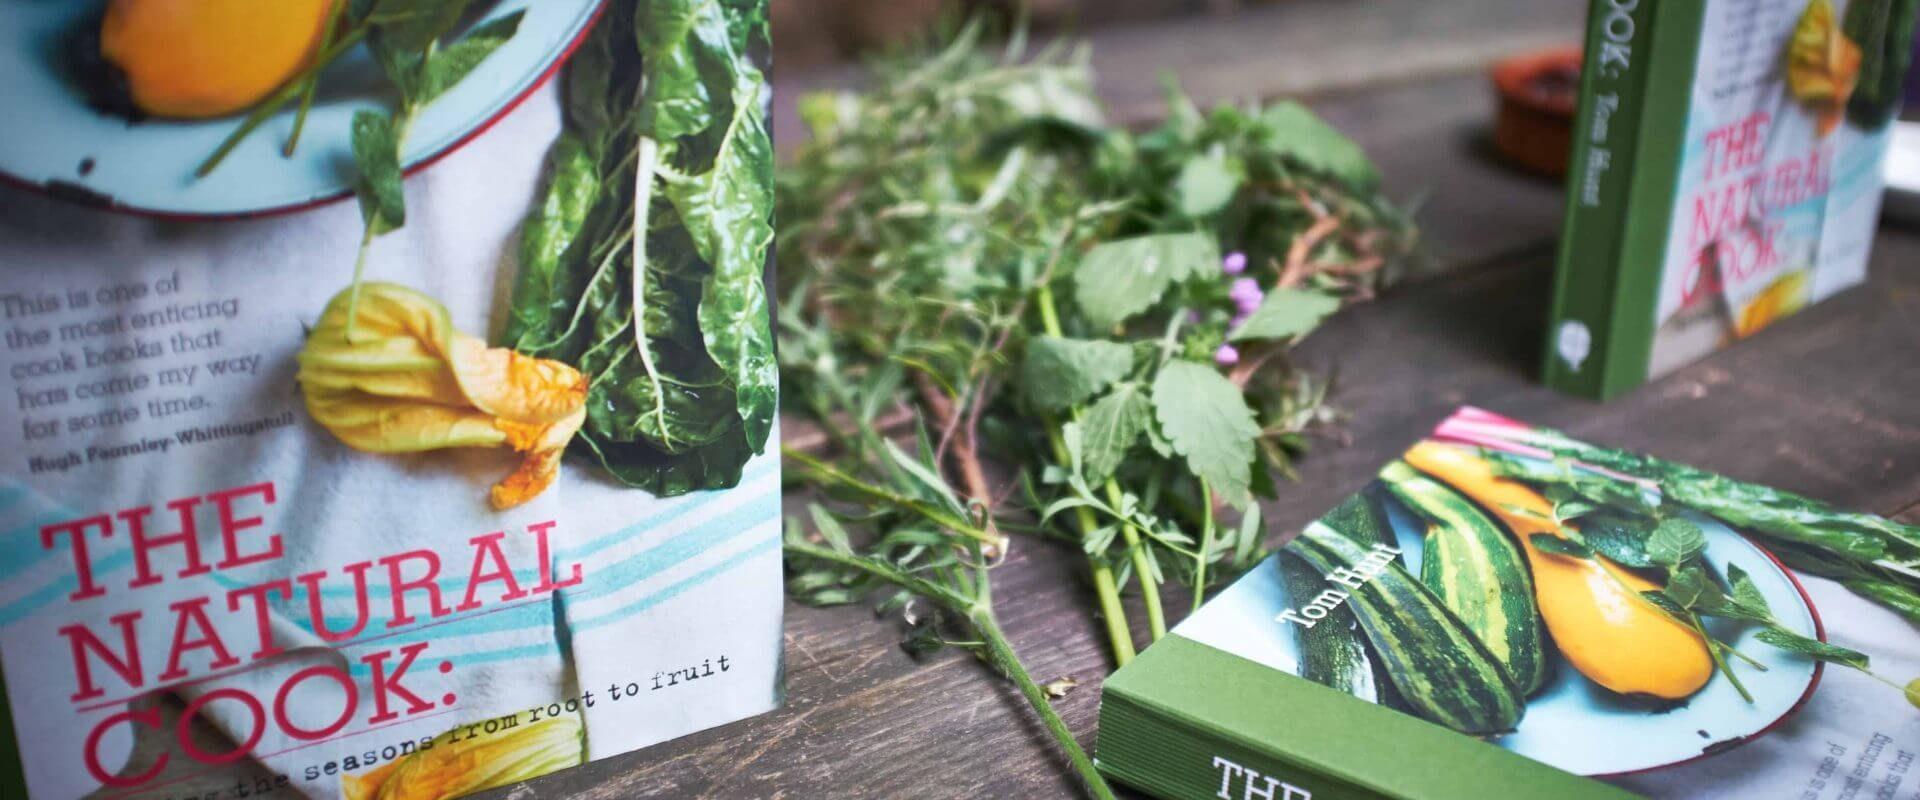 The Natural Cook book launch